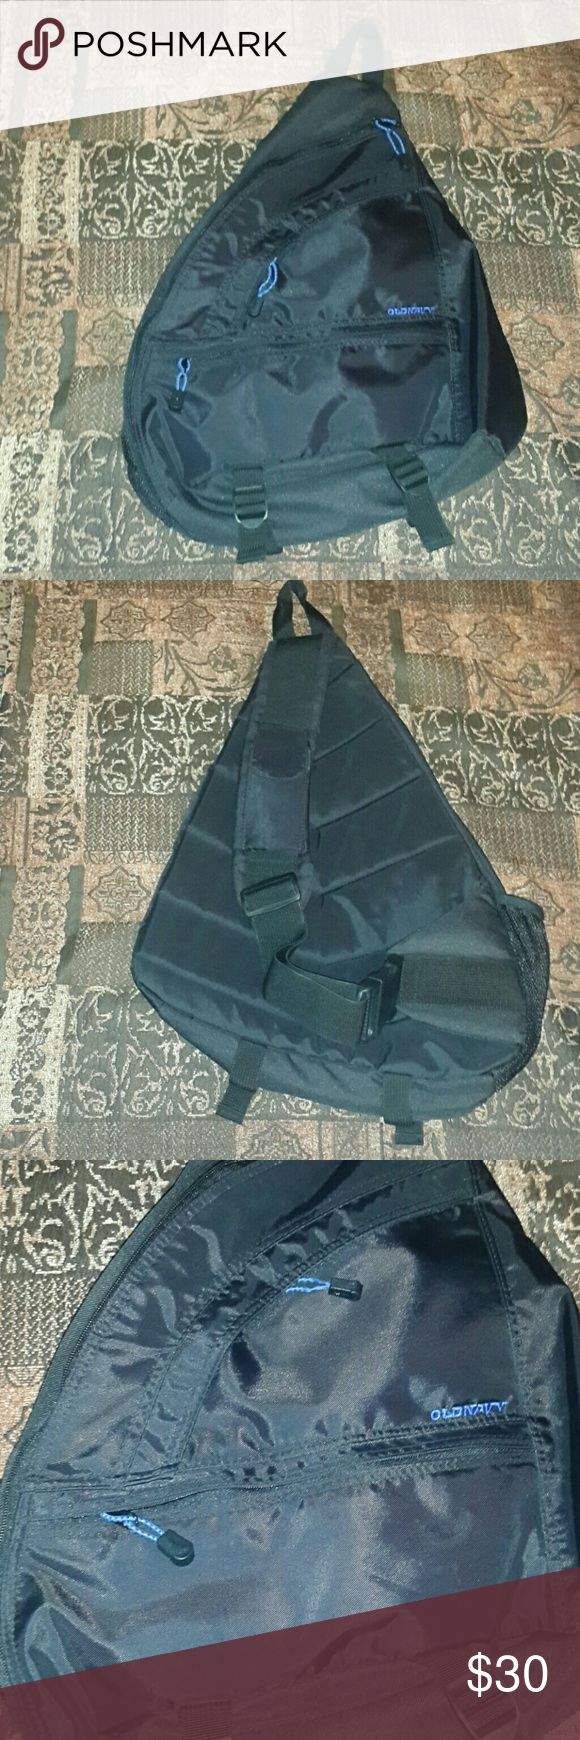 Flash Sale!!! Old Navy Sling Backpack Old navy backpack, black. Used a few time, excellent condition. Old Navy Bags Backpacks